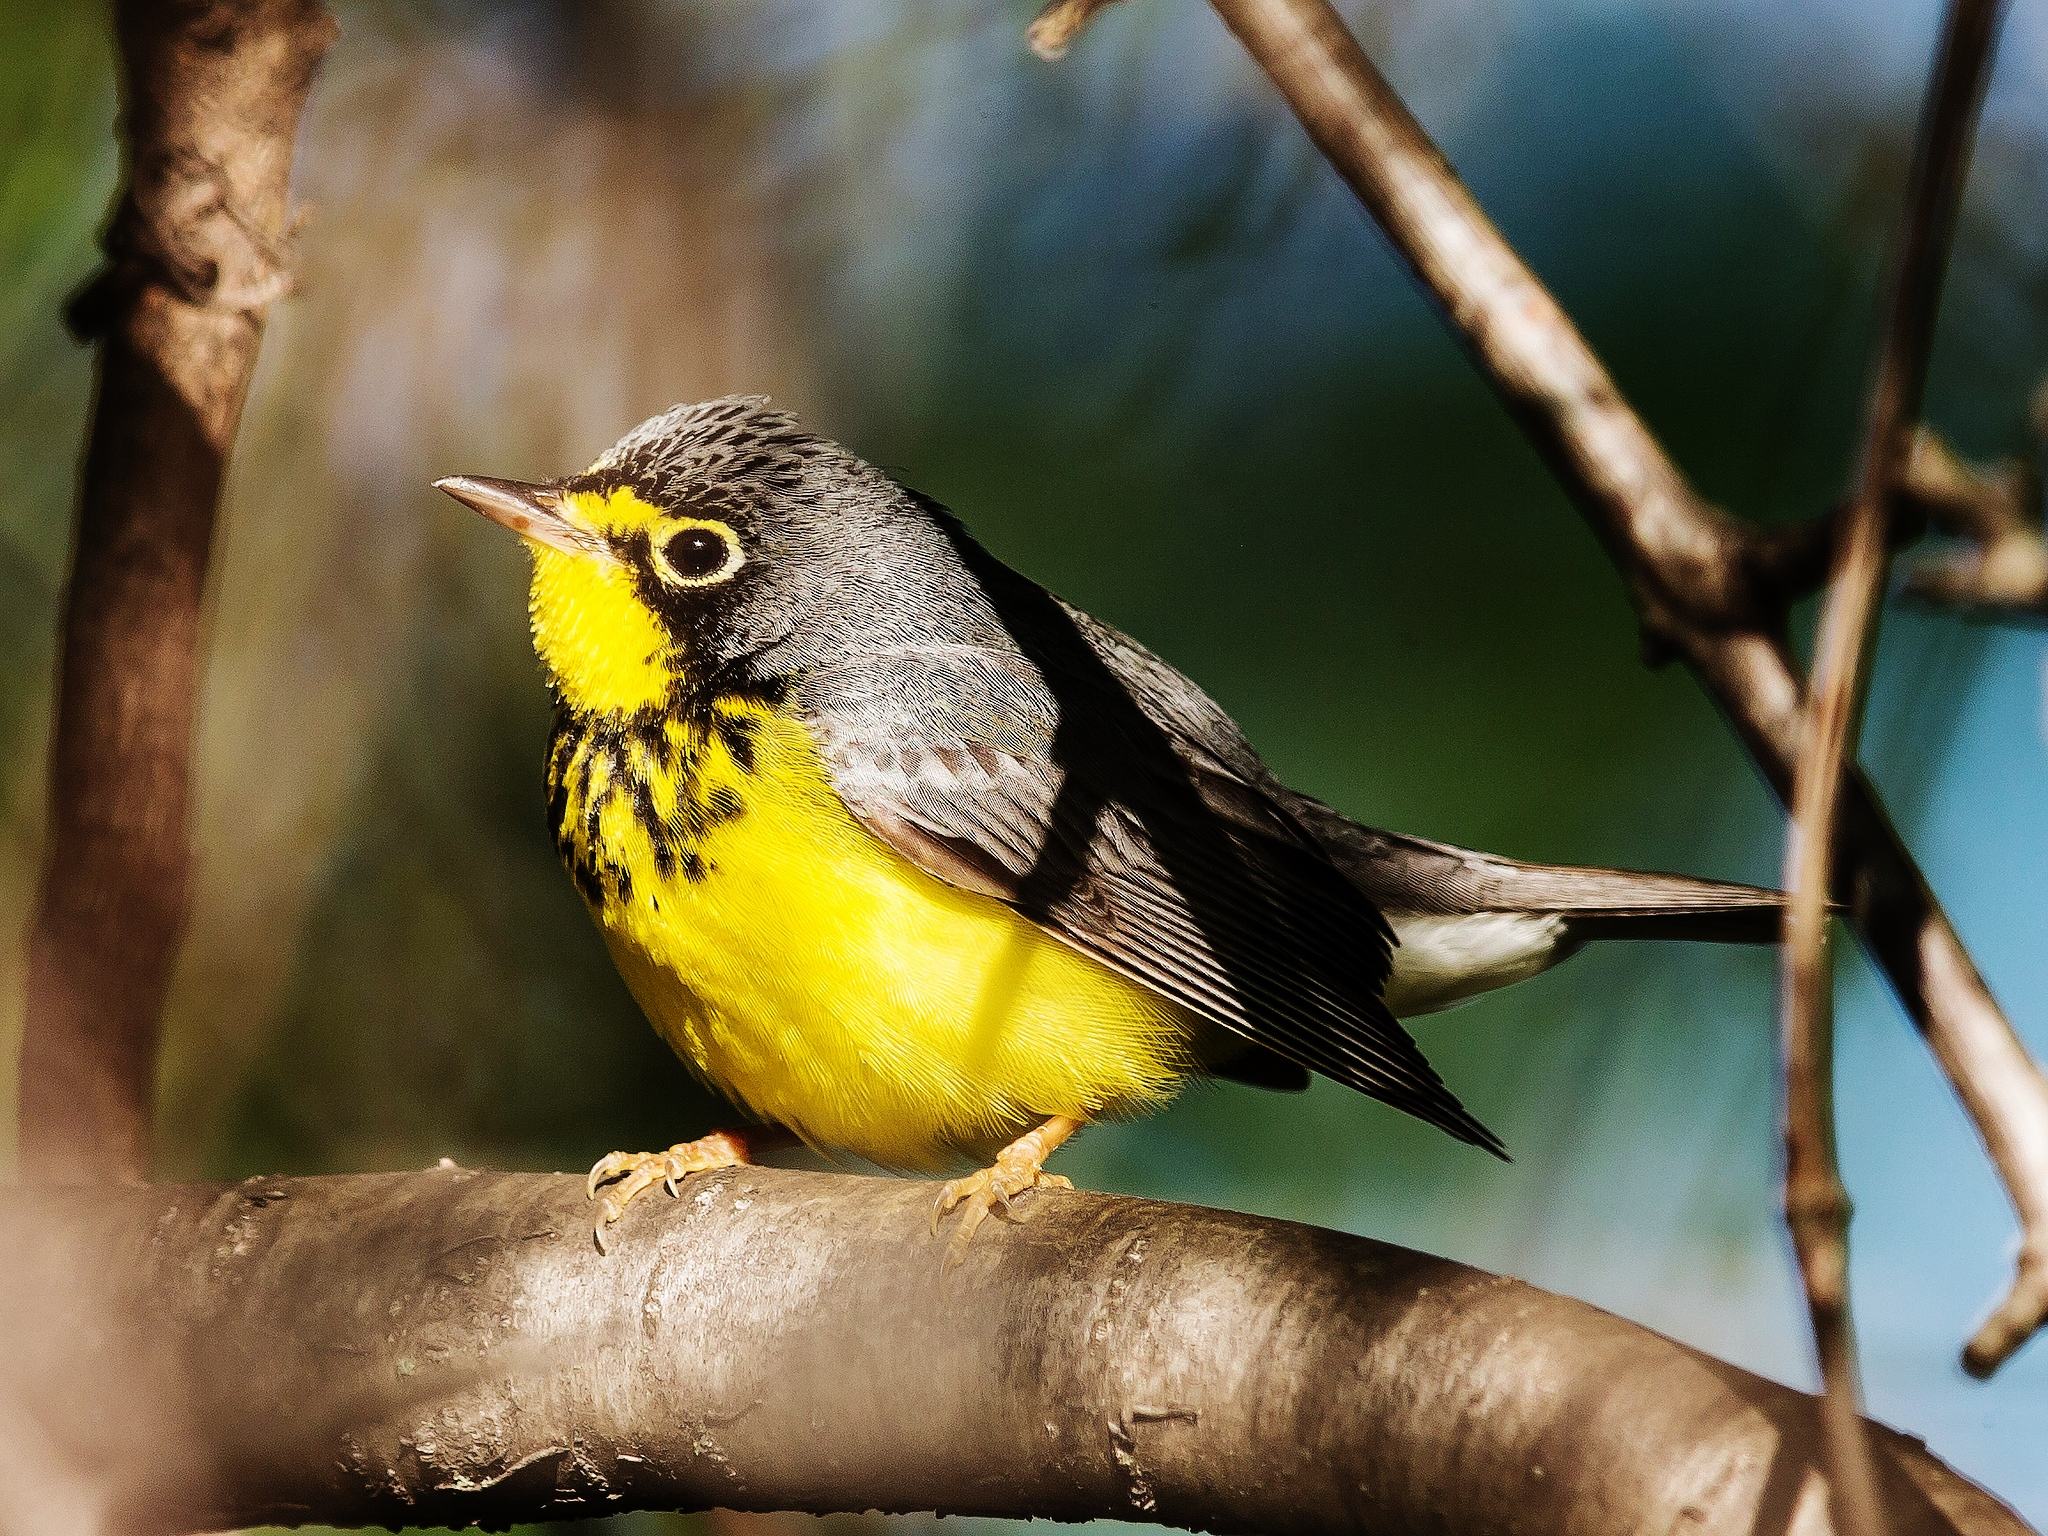 Caption: Canada warbler, Credit: John Benson on Flickr